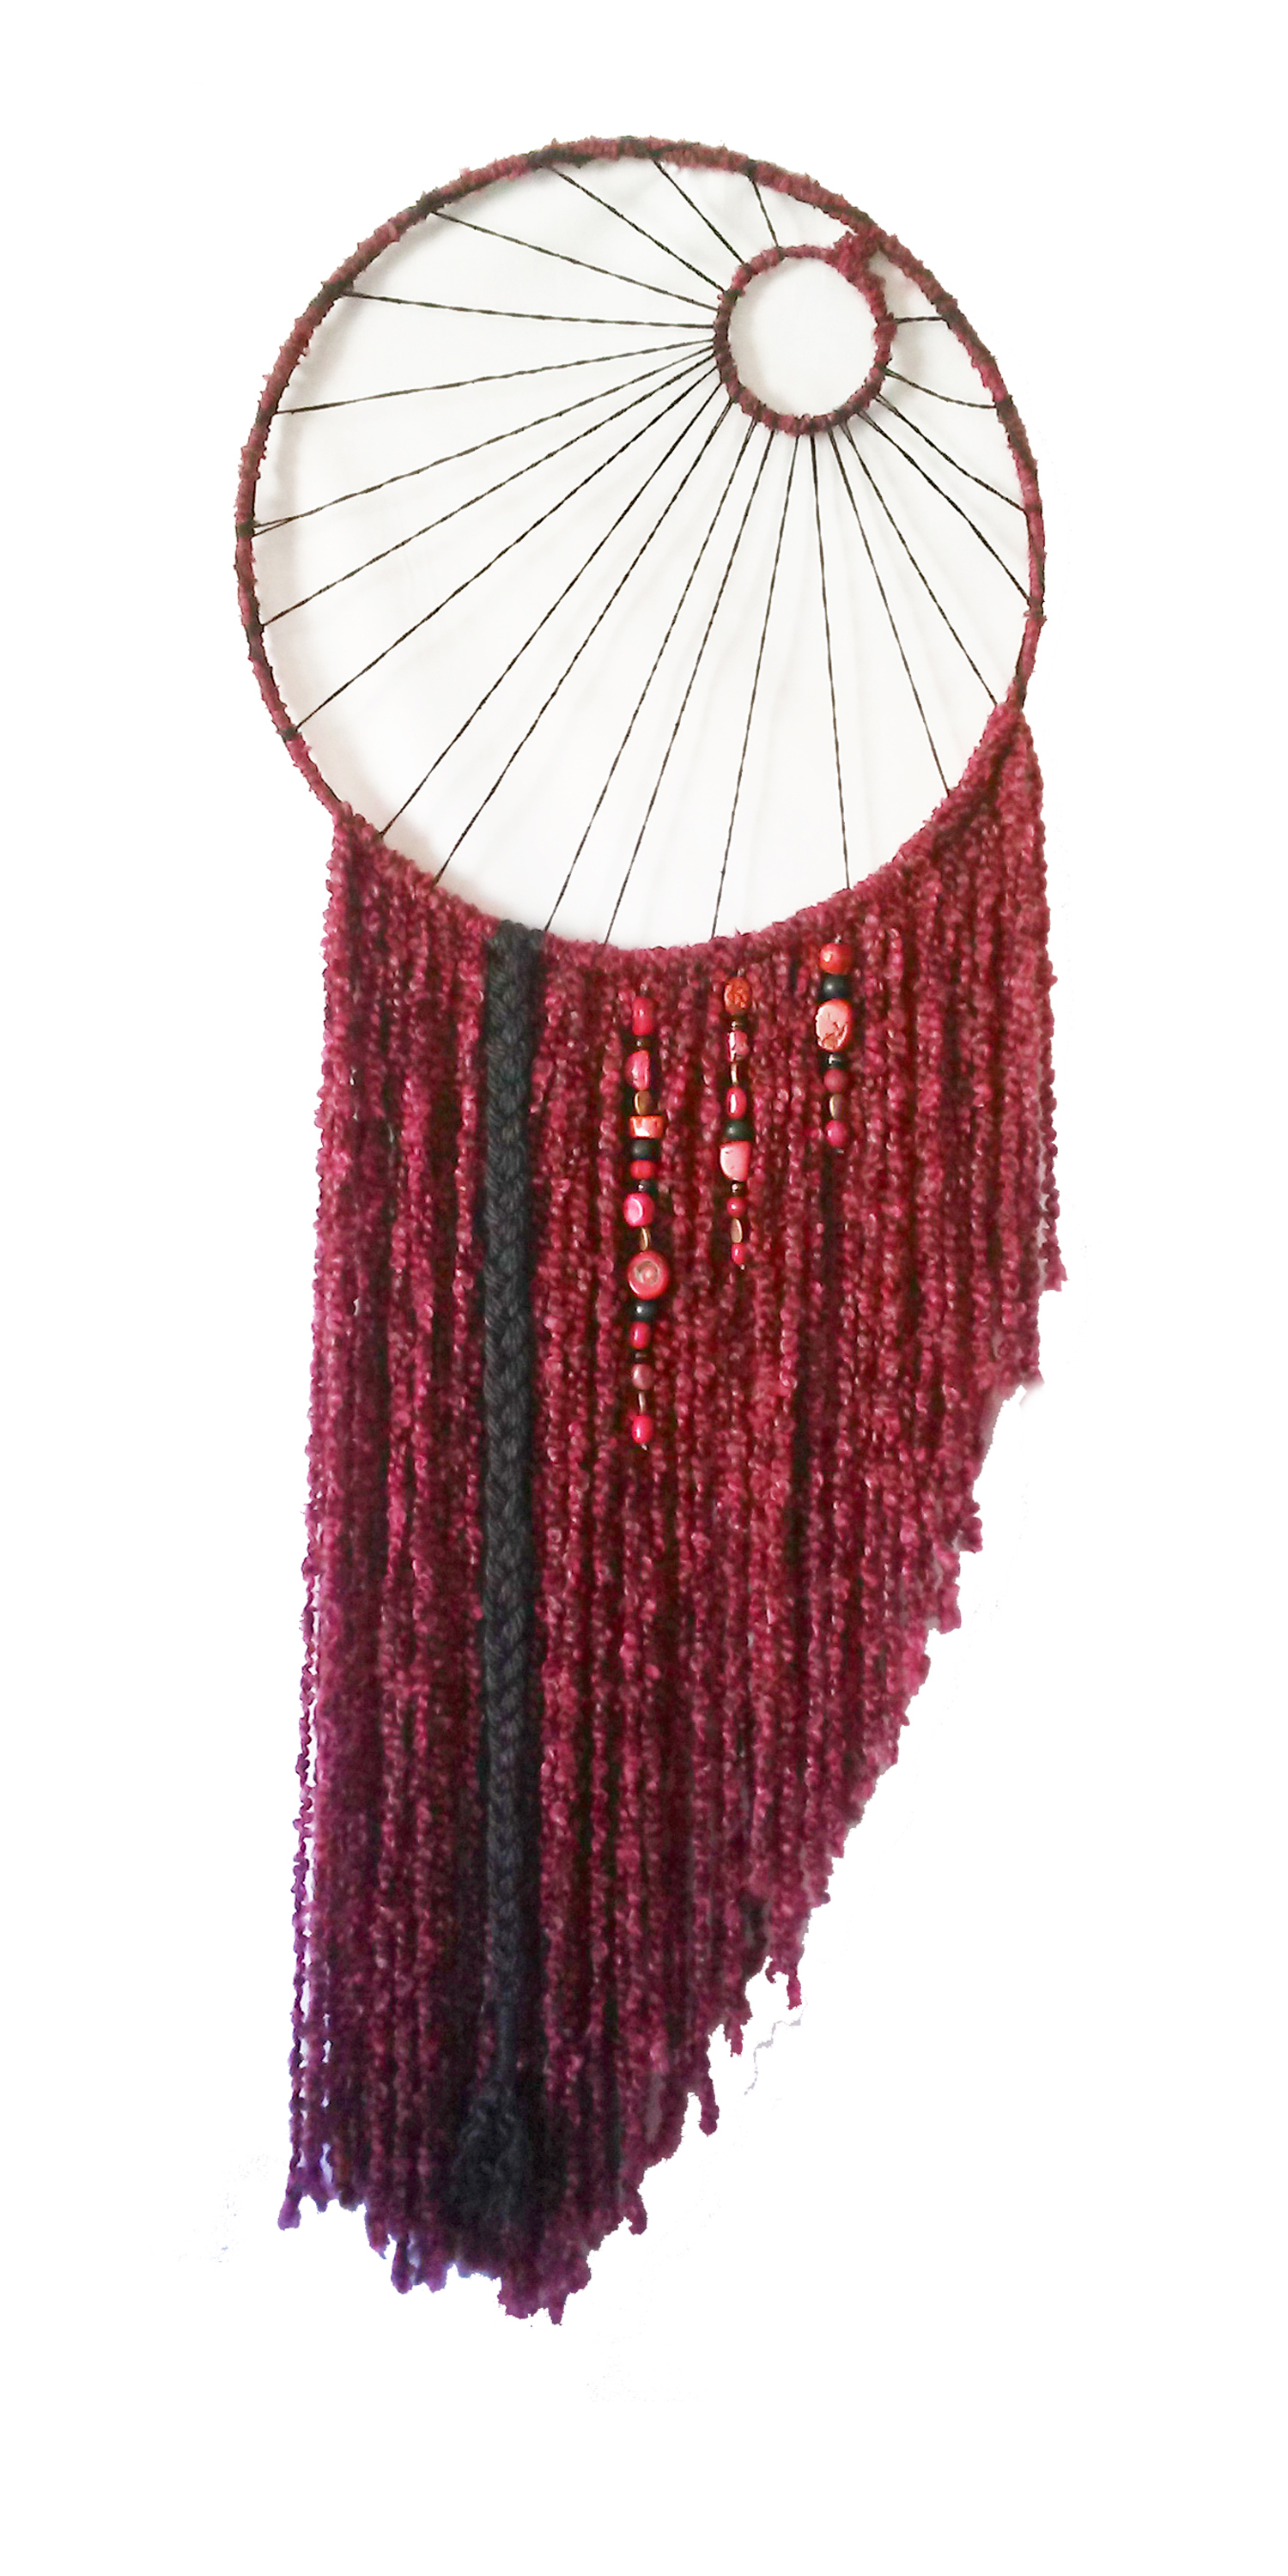 "Red Moon Dreamcatcher   19"" x 54"" Metal hoops, cord, yarn, beads Sold to retailer Enchanted Forrest Reiki Center"